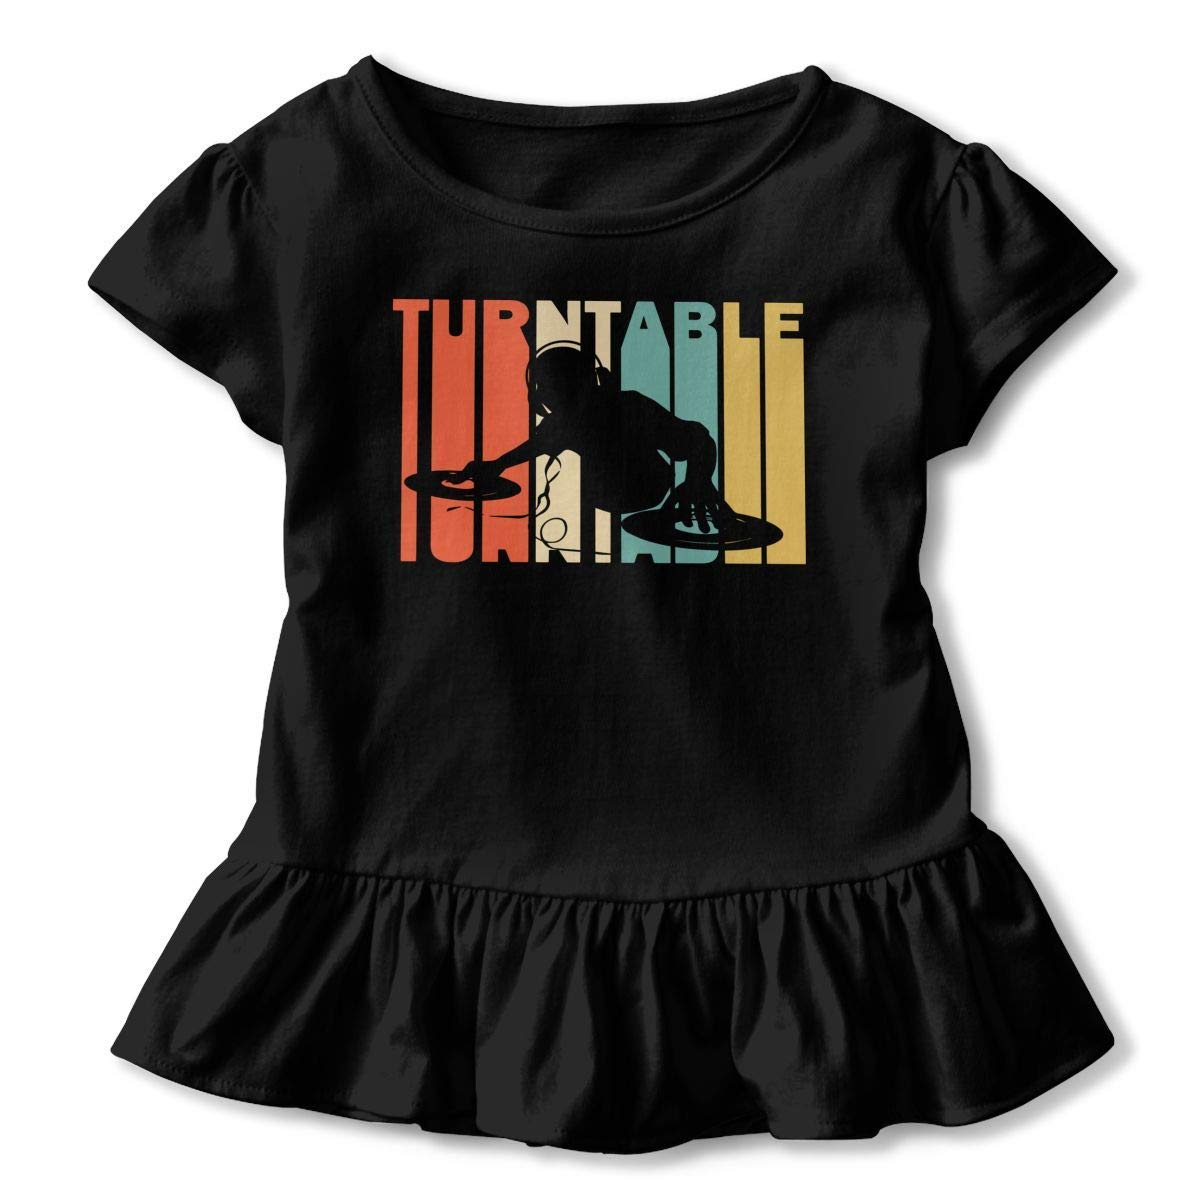 Short Sleeve Retro Style DJ Turntable Silhouette Shirts for Girls 2-6T Ruffled Sweatshirt with Falbala